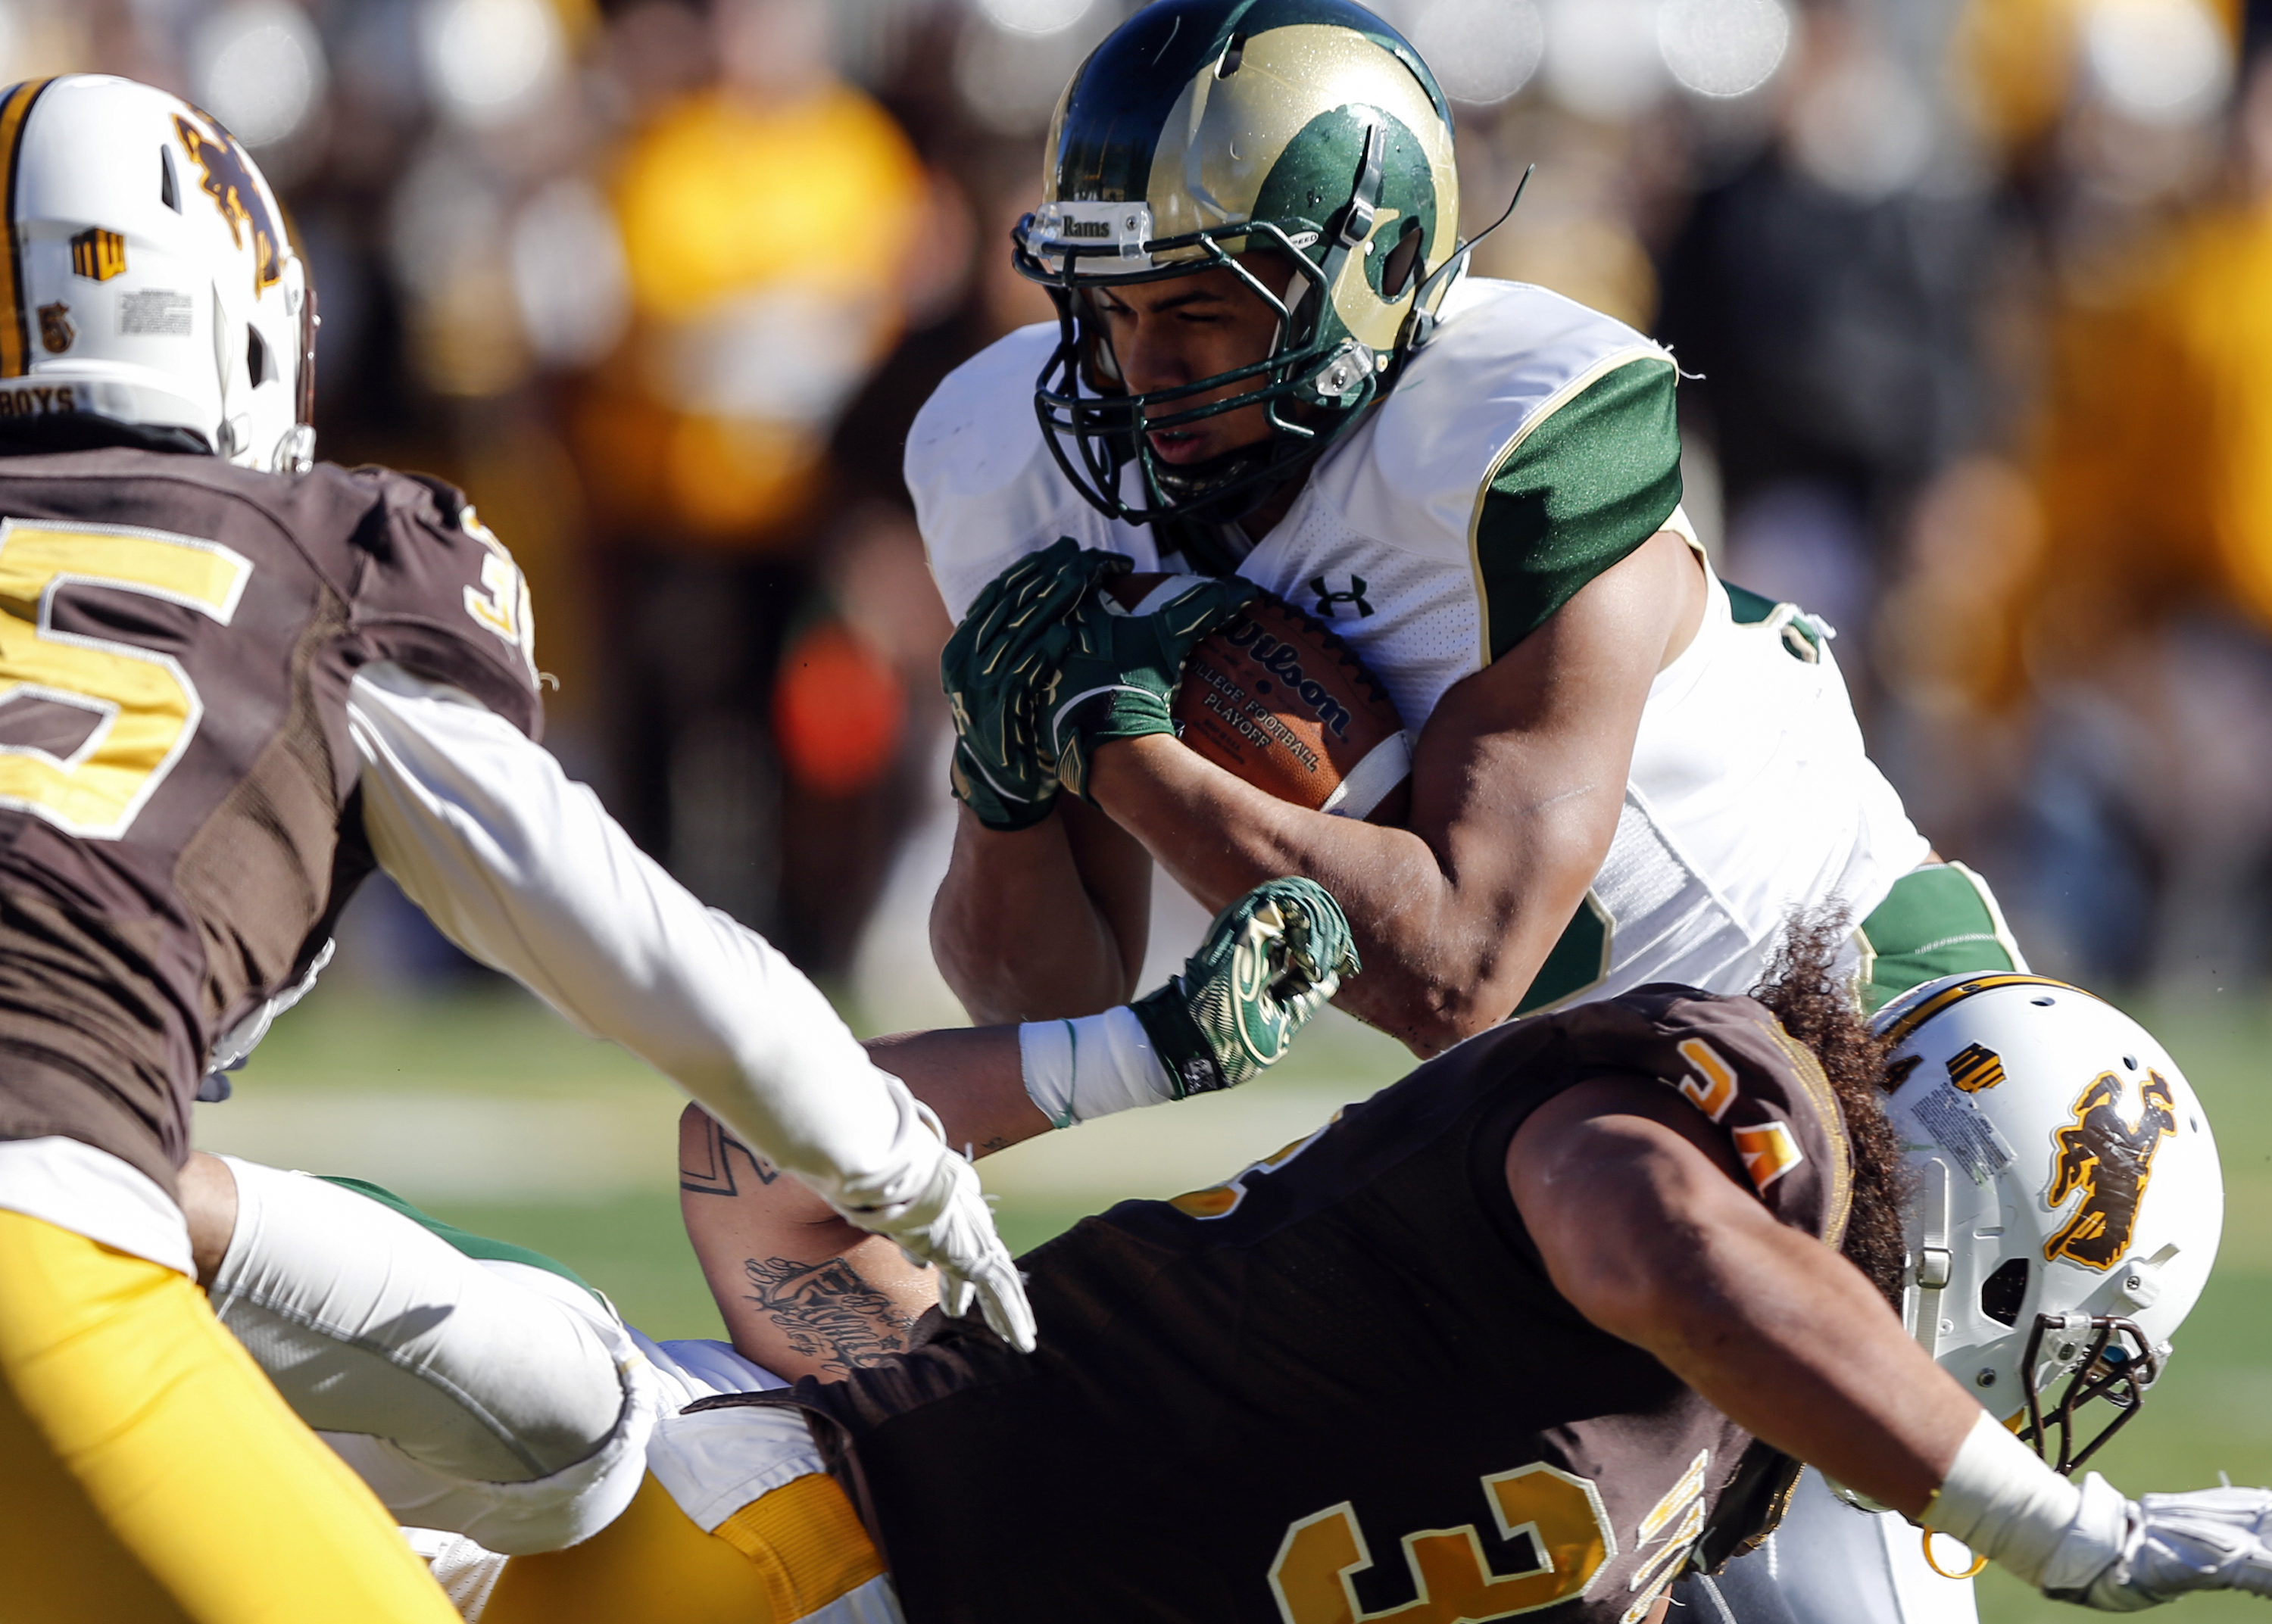 Colorado State's unning back Izzy Matthews runs into the end zone against Wyoming defenders during the second quarter of an NCAA college football game, Saturday, Nov. 7, 2015, in Laramie, Wyo. (AP Photo/Michael Smith)